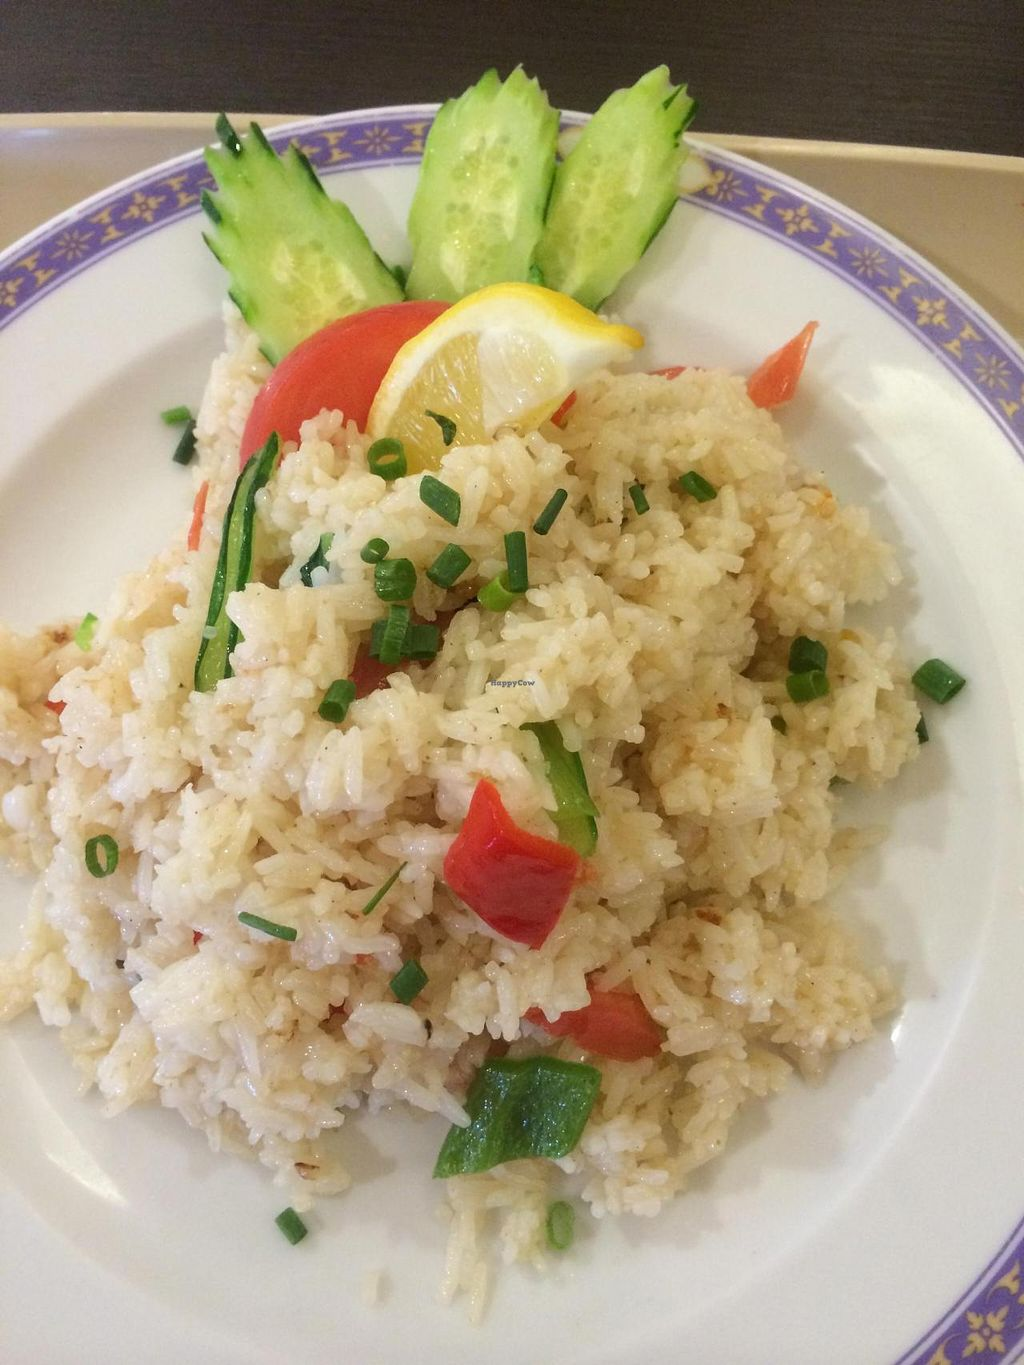 """Photo of Jai Thai  by <a href=""""/members/profile/Meggie%20and%20Ben"""">Meggie and Ben</a> <br/>Crab rice minus crab and fish sauce <br/> April 24, 2014  - <a href='/contact/abuse/image/6611/68512'>Report</a>"""